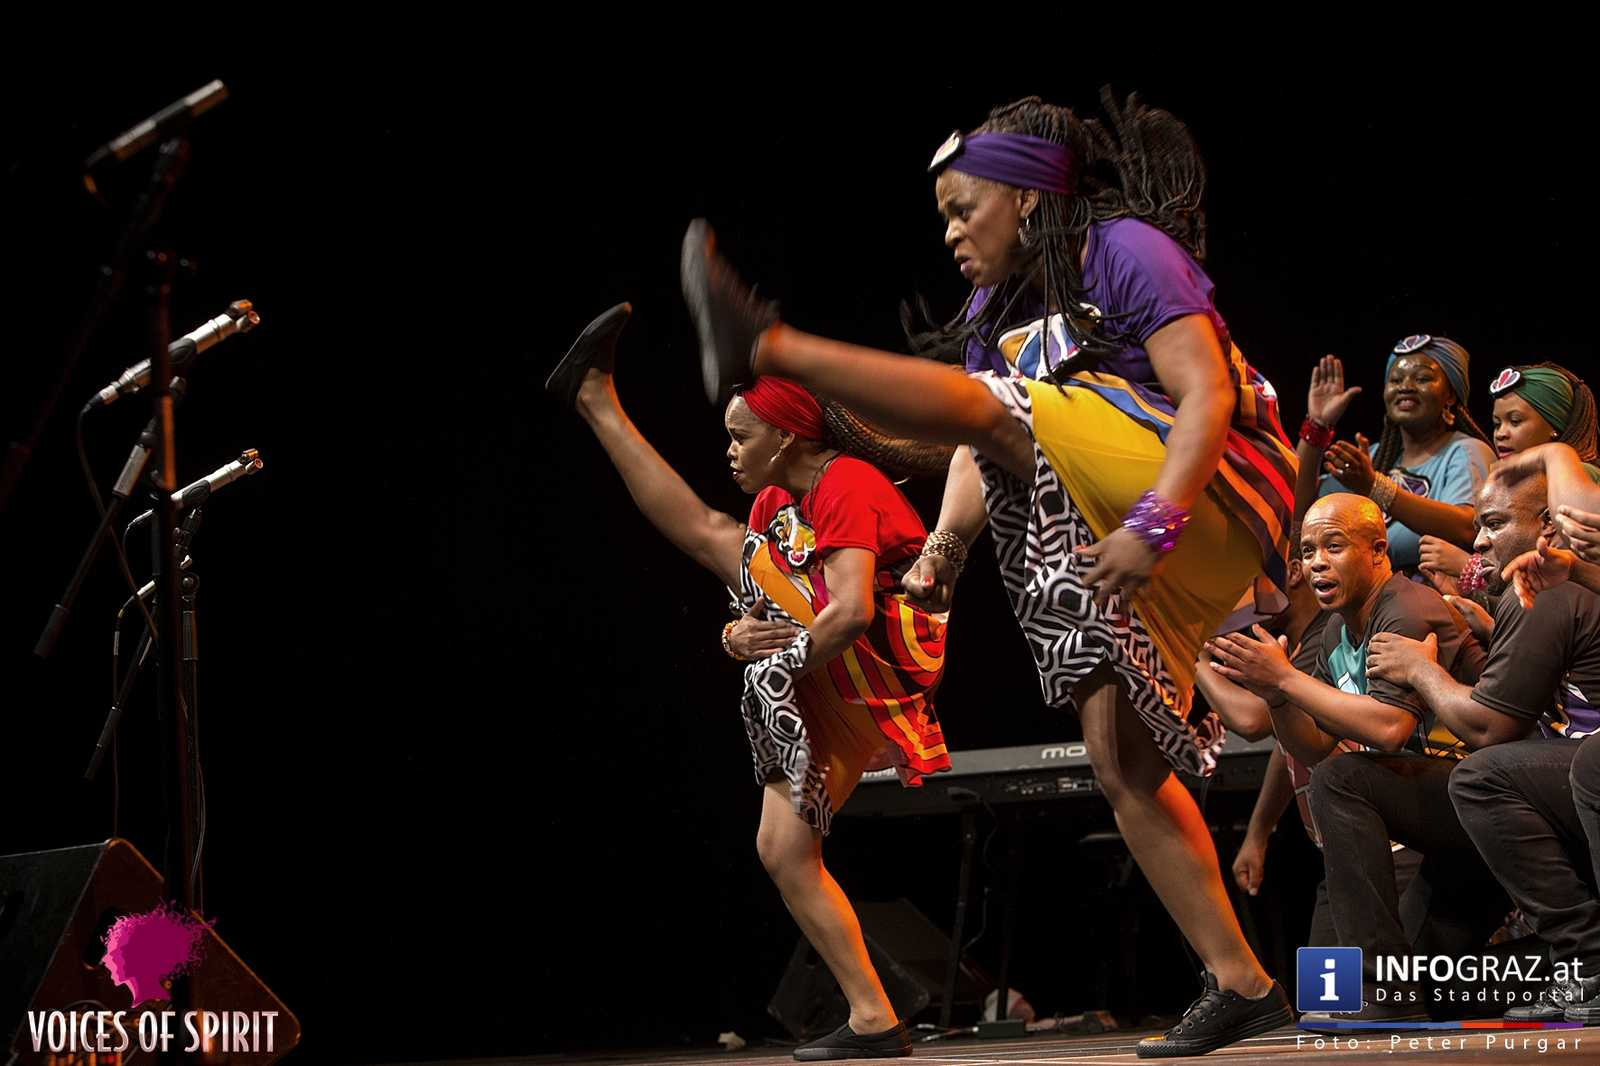 soweto gospel choir internationales chorfestival statdthalle graz voices of spirit eroeffnung festivals 2016 064